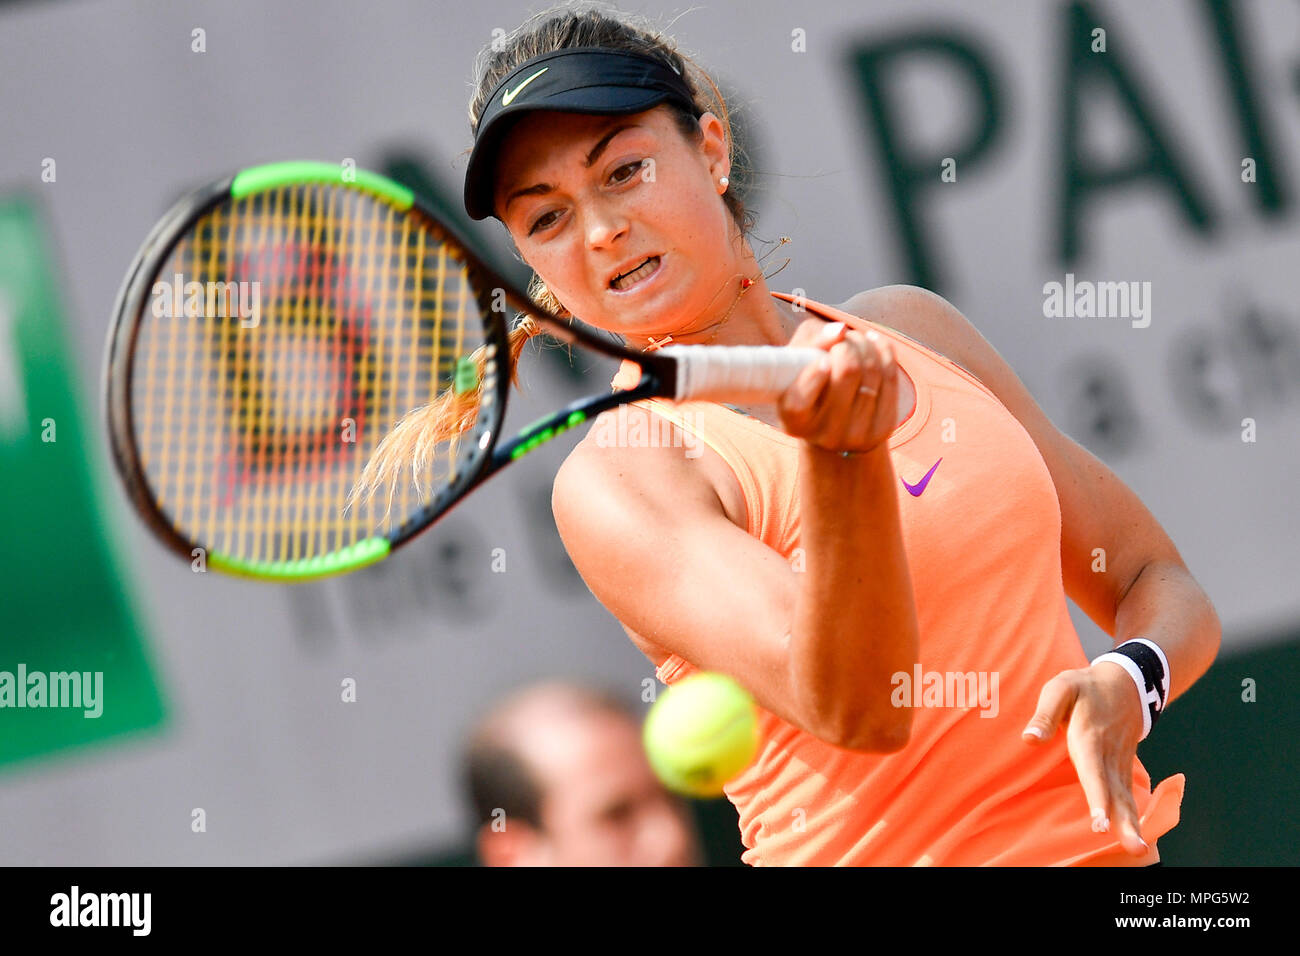 Paris, France. 23rd May, 2018. Margot Yerolymos of France returns the ball to Lu Jiajing of China during the women's singles Qualification 1st round match of French Open in Paris, France on May 23, 2018. Margot Yerolymos won 2-0. Credit: Chen Yichen/Xinhua/Alamy Live News Stock Photo